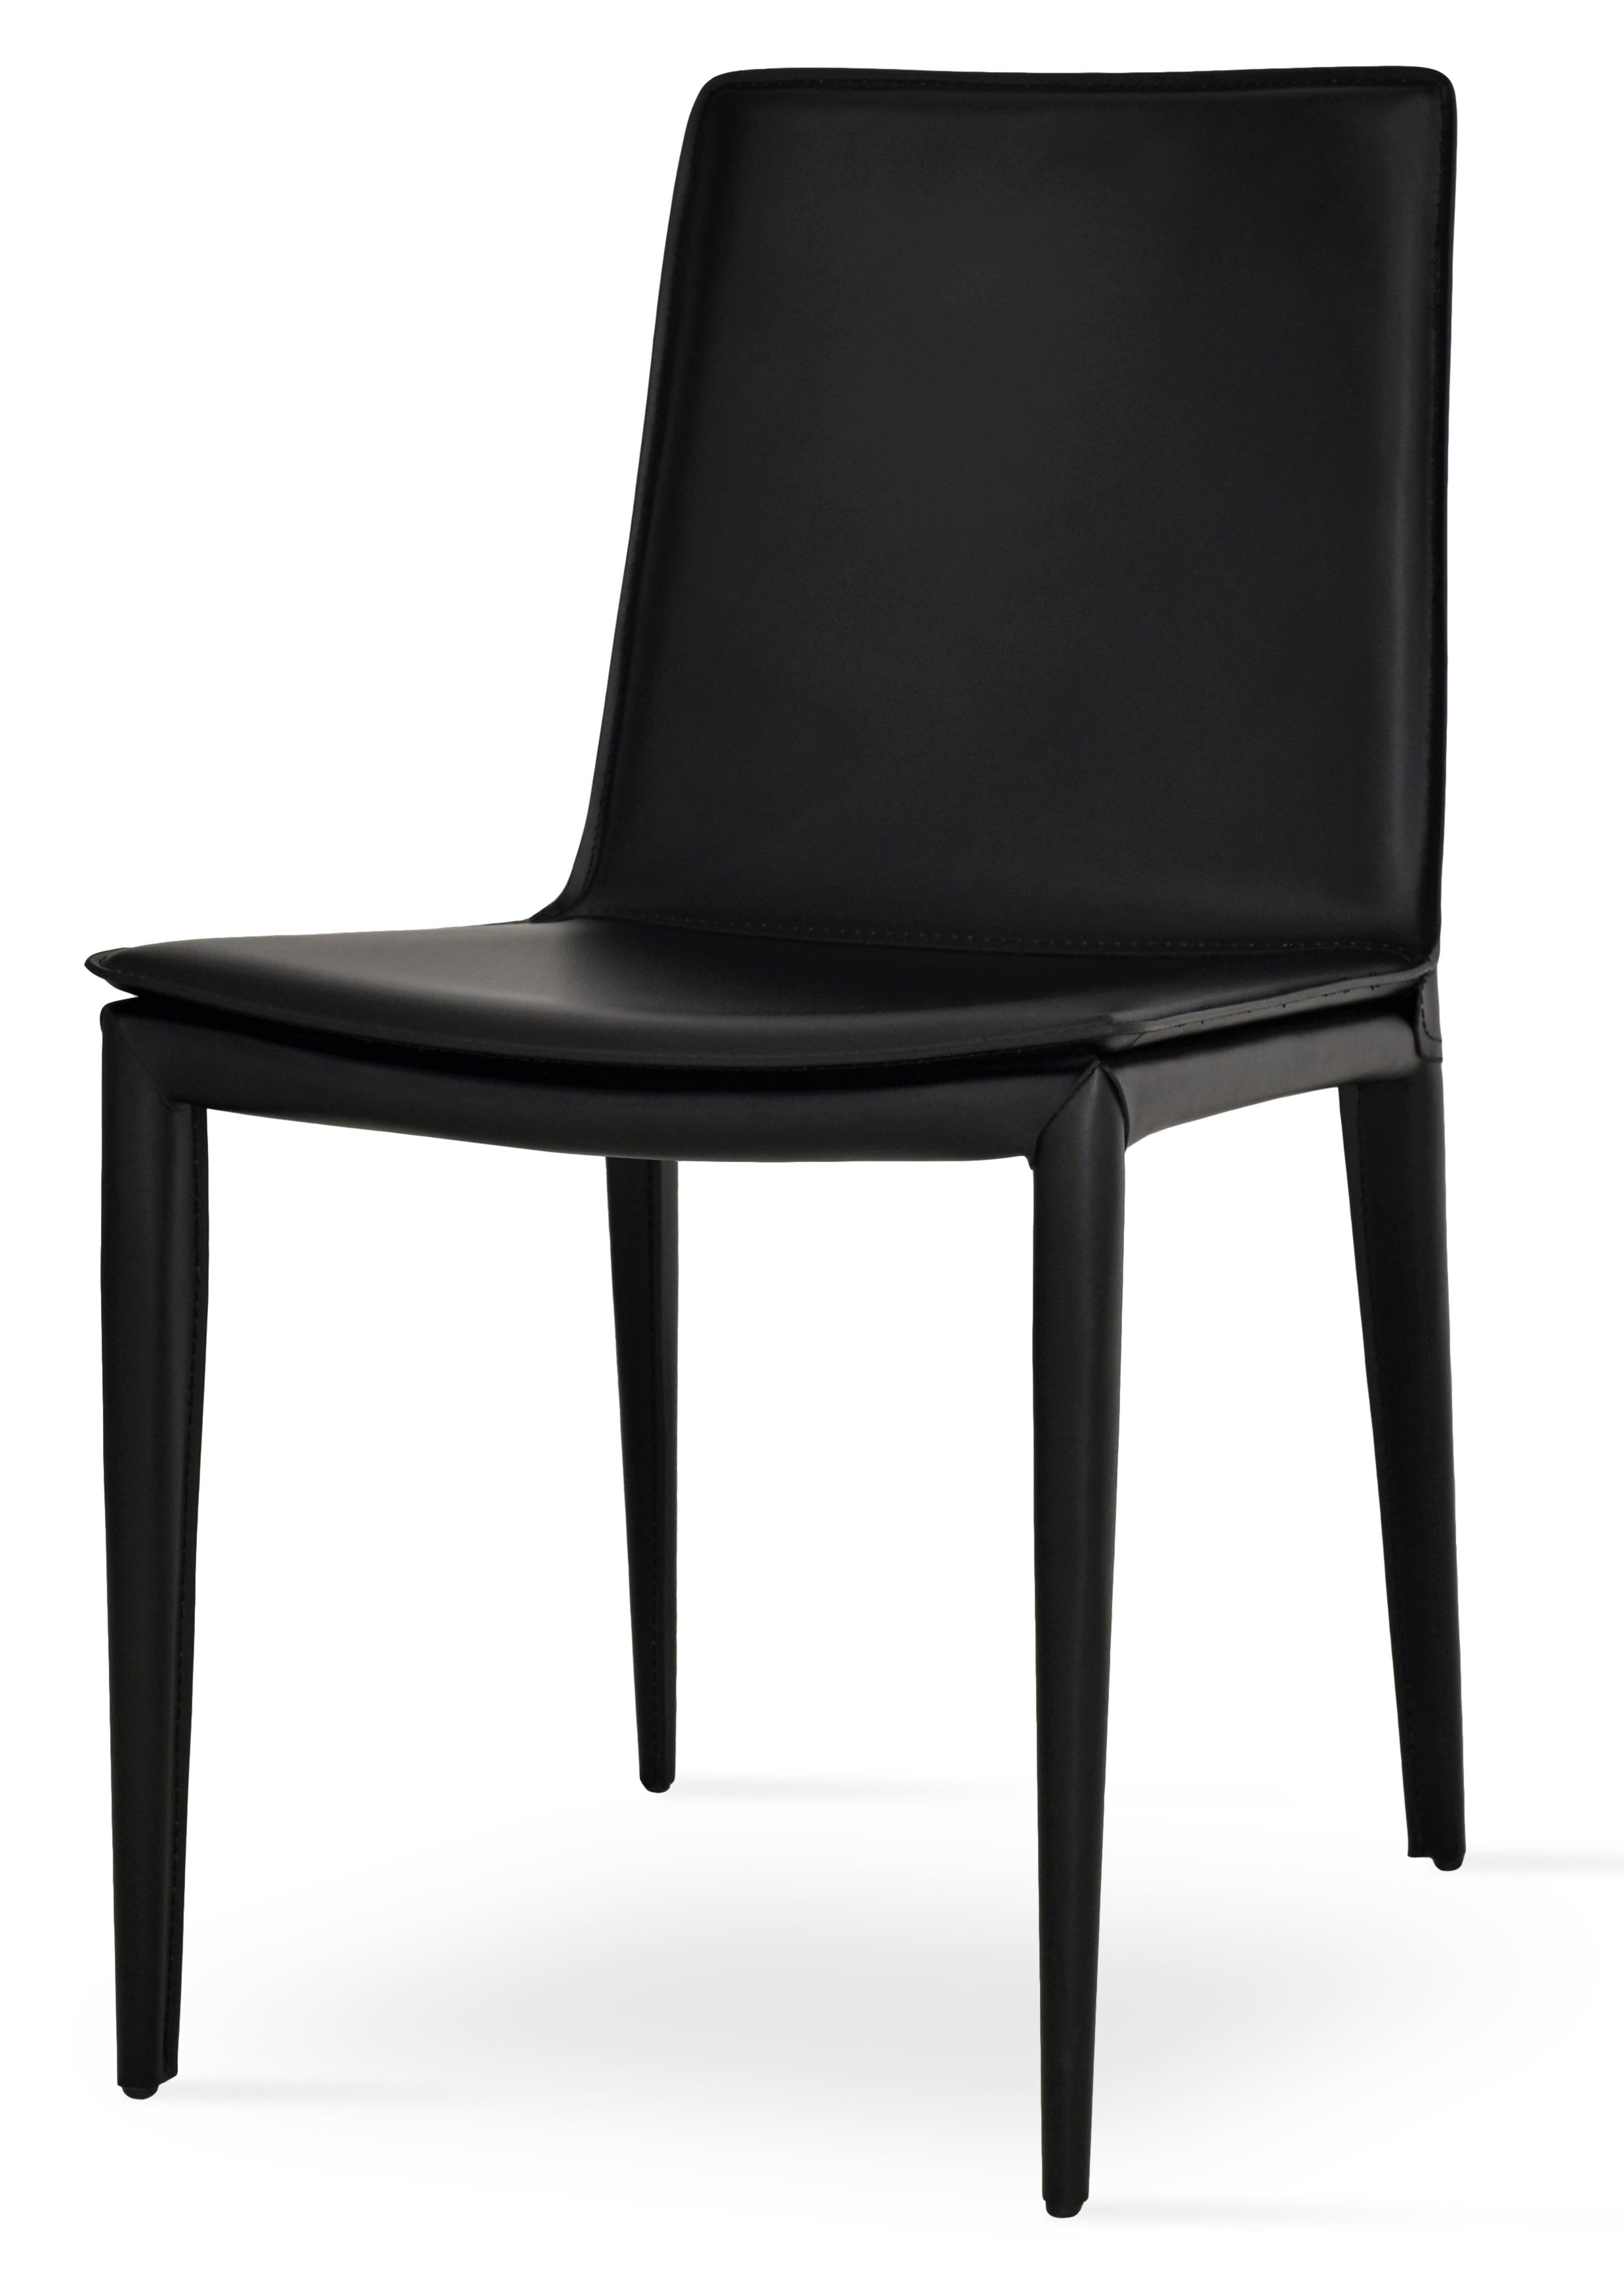 Tiffany Dining Chair | SohoConcept